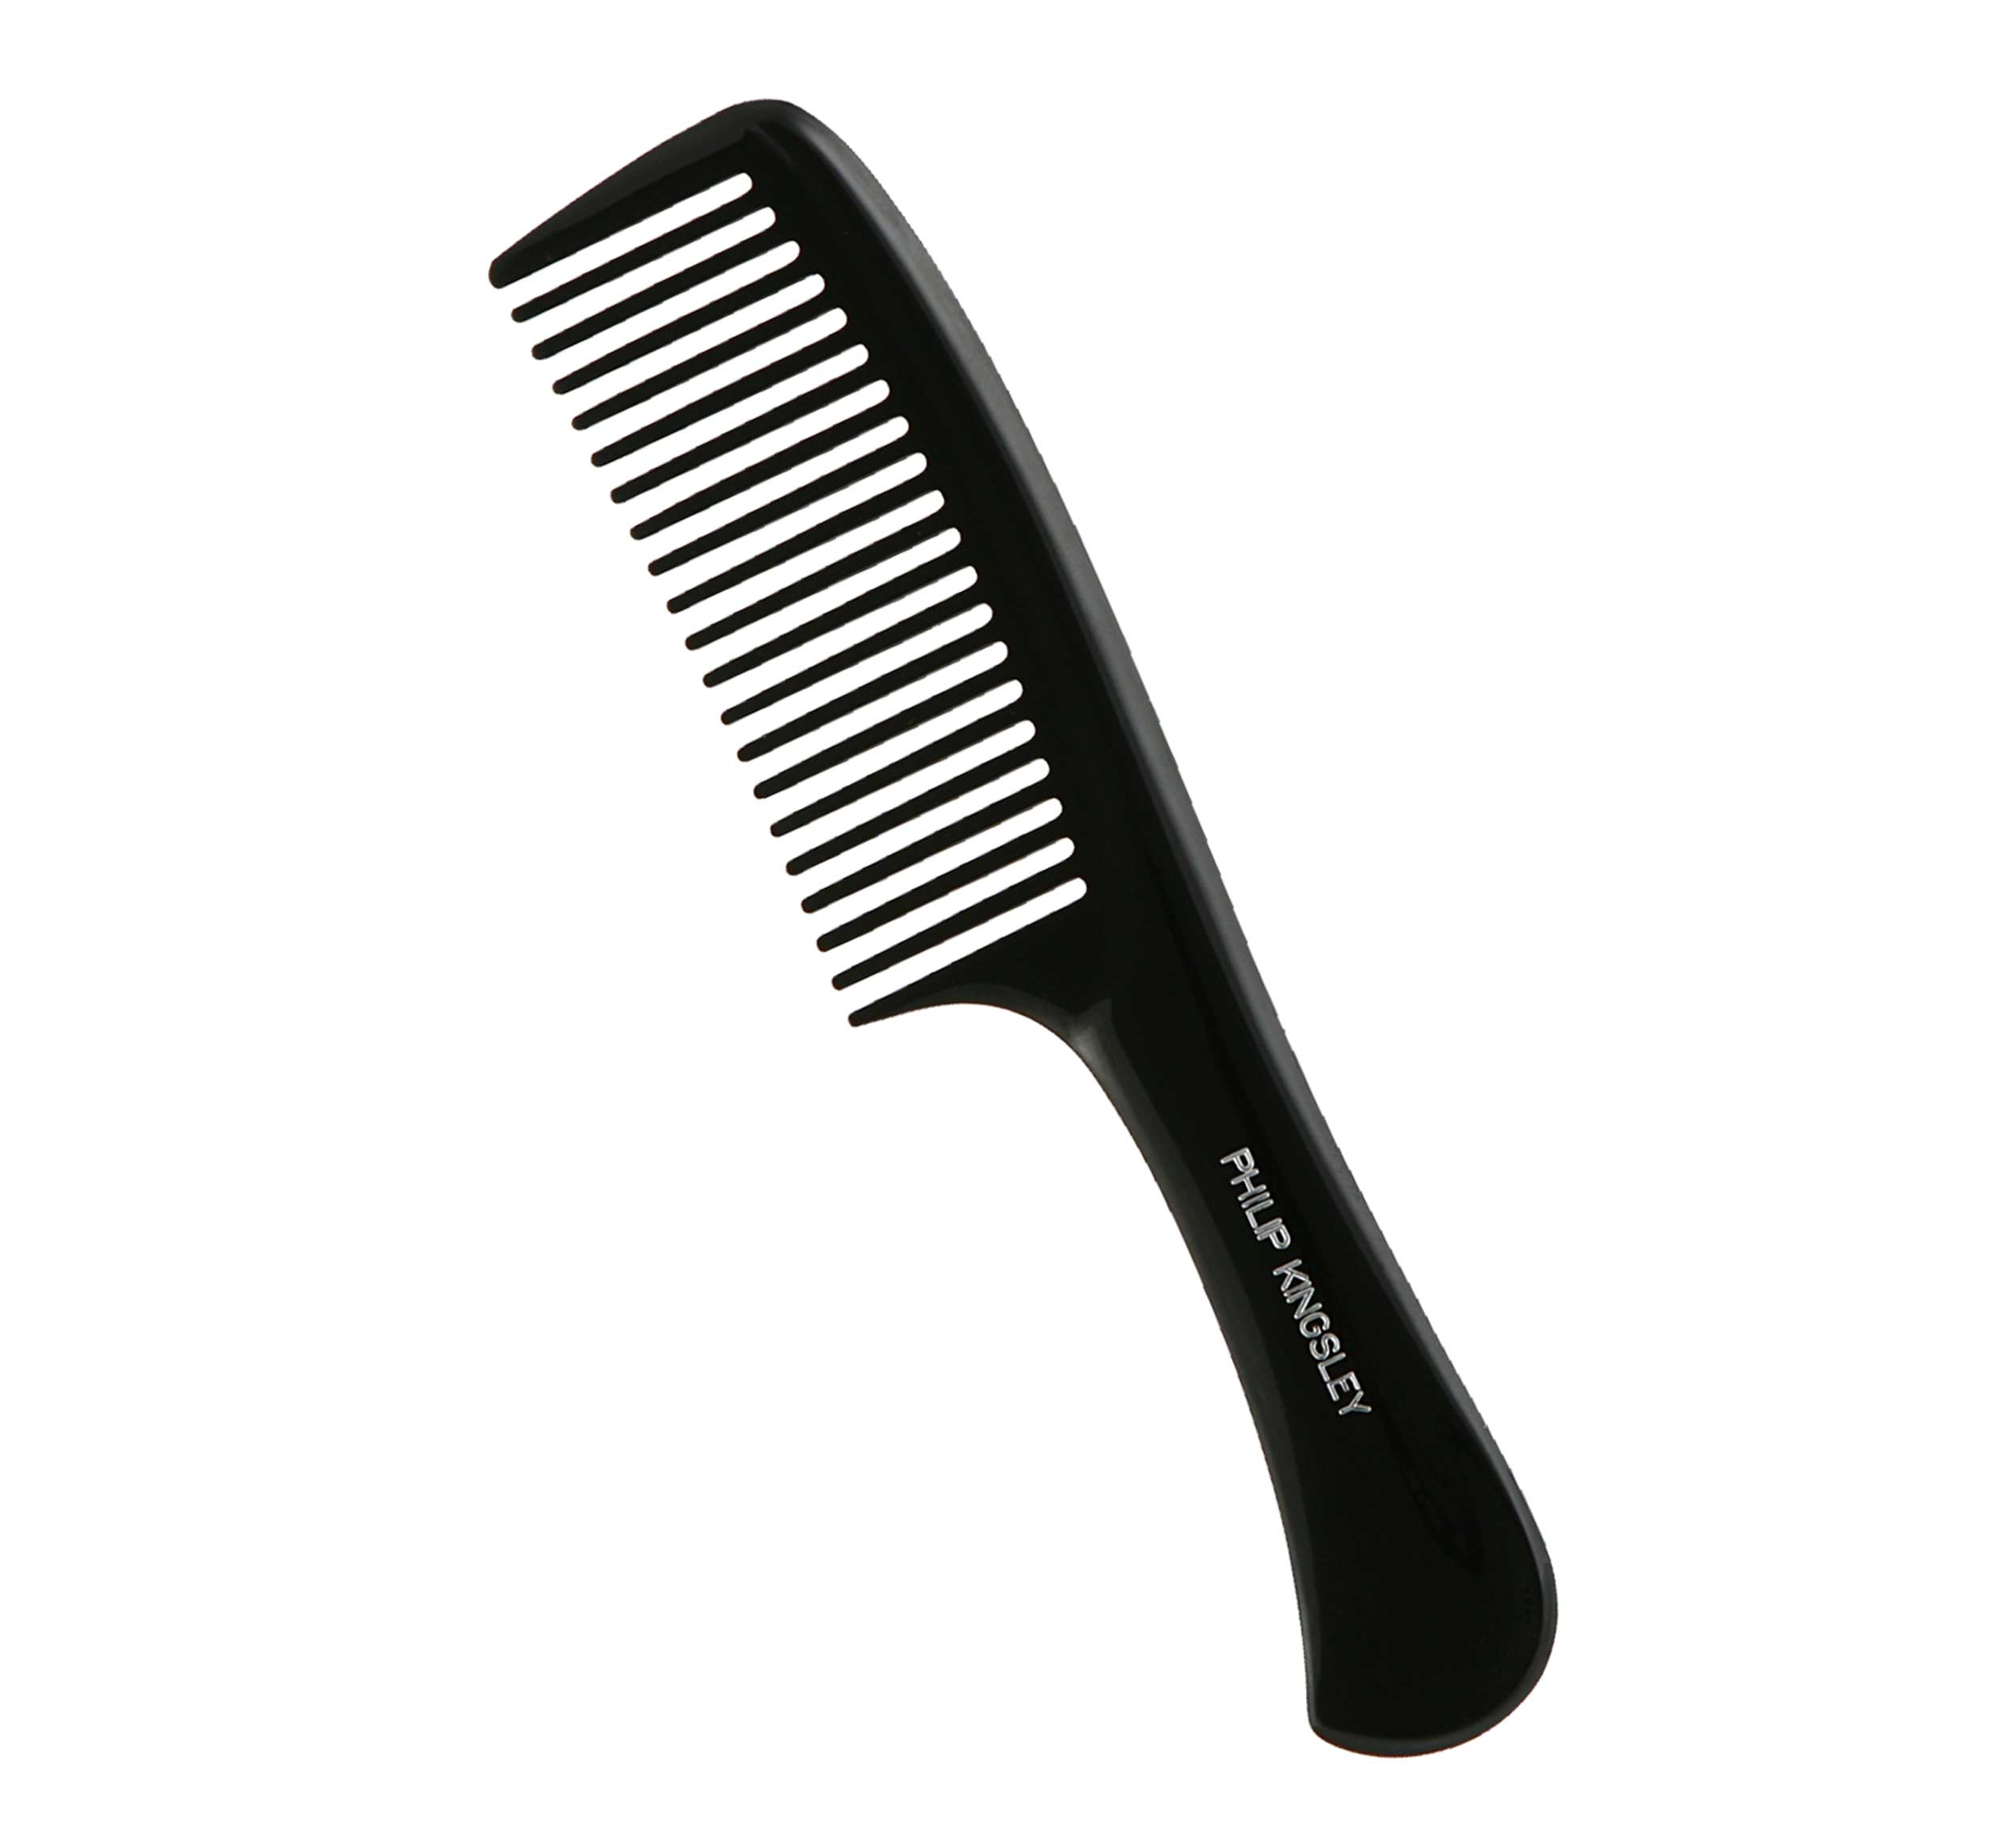 Hair Brush Clip Art ~ Hair brush and comb clipart suggest